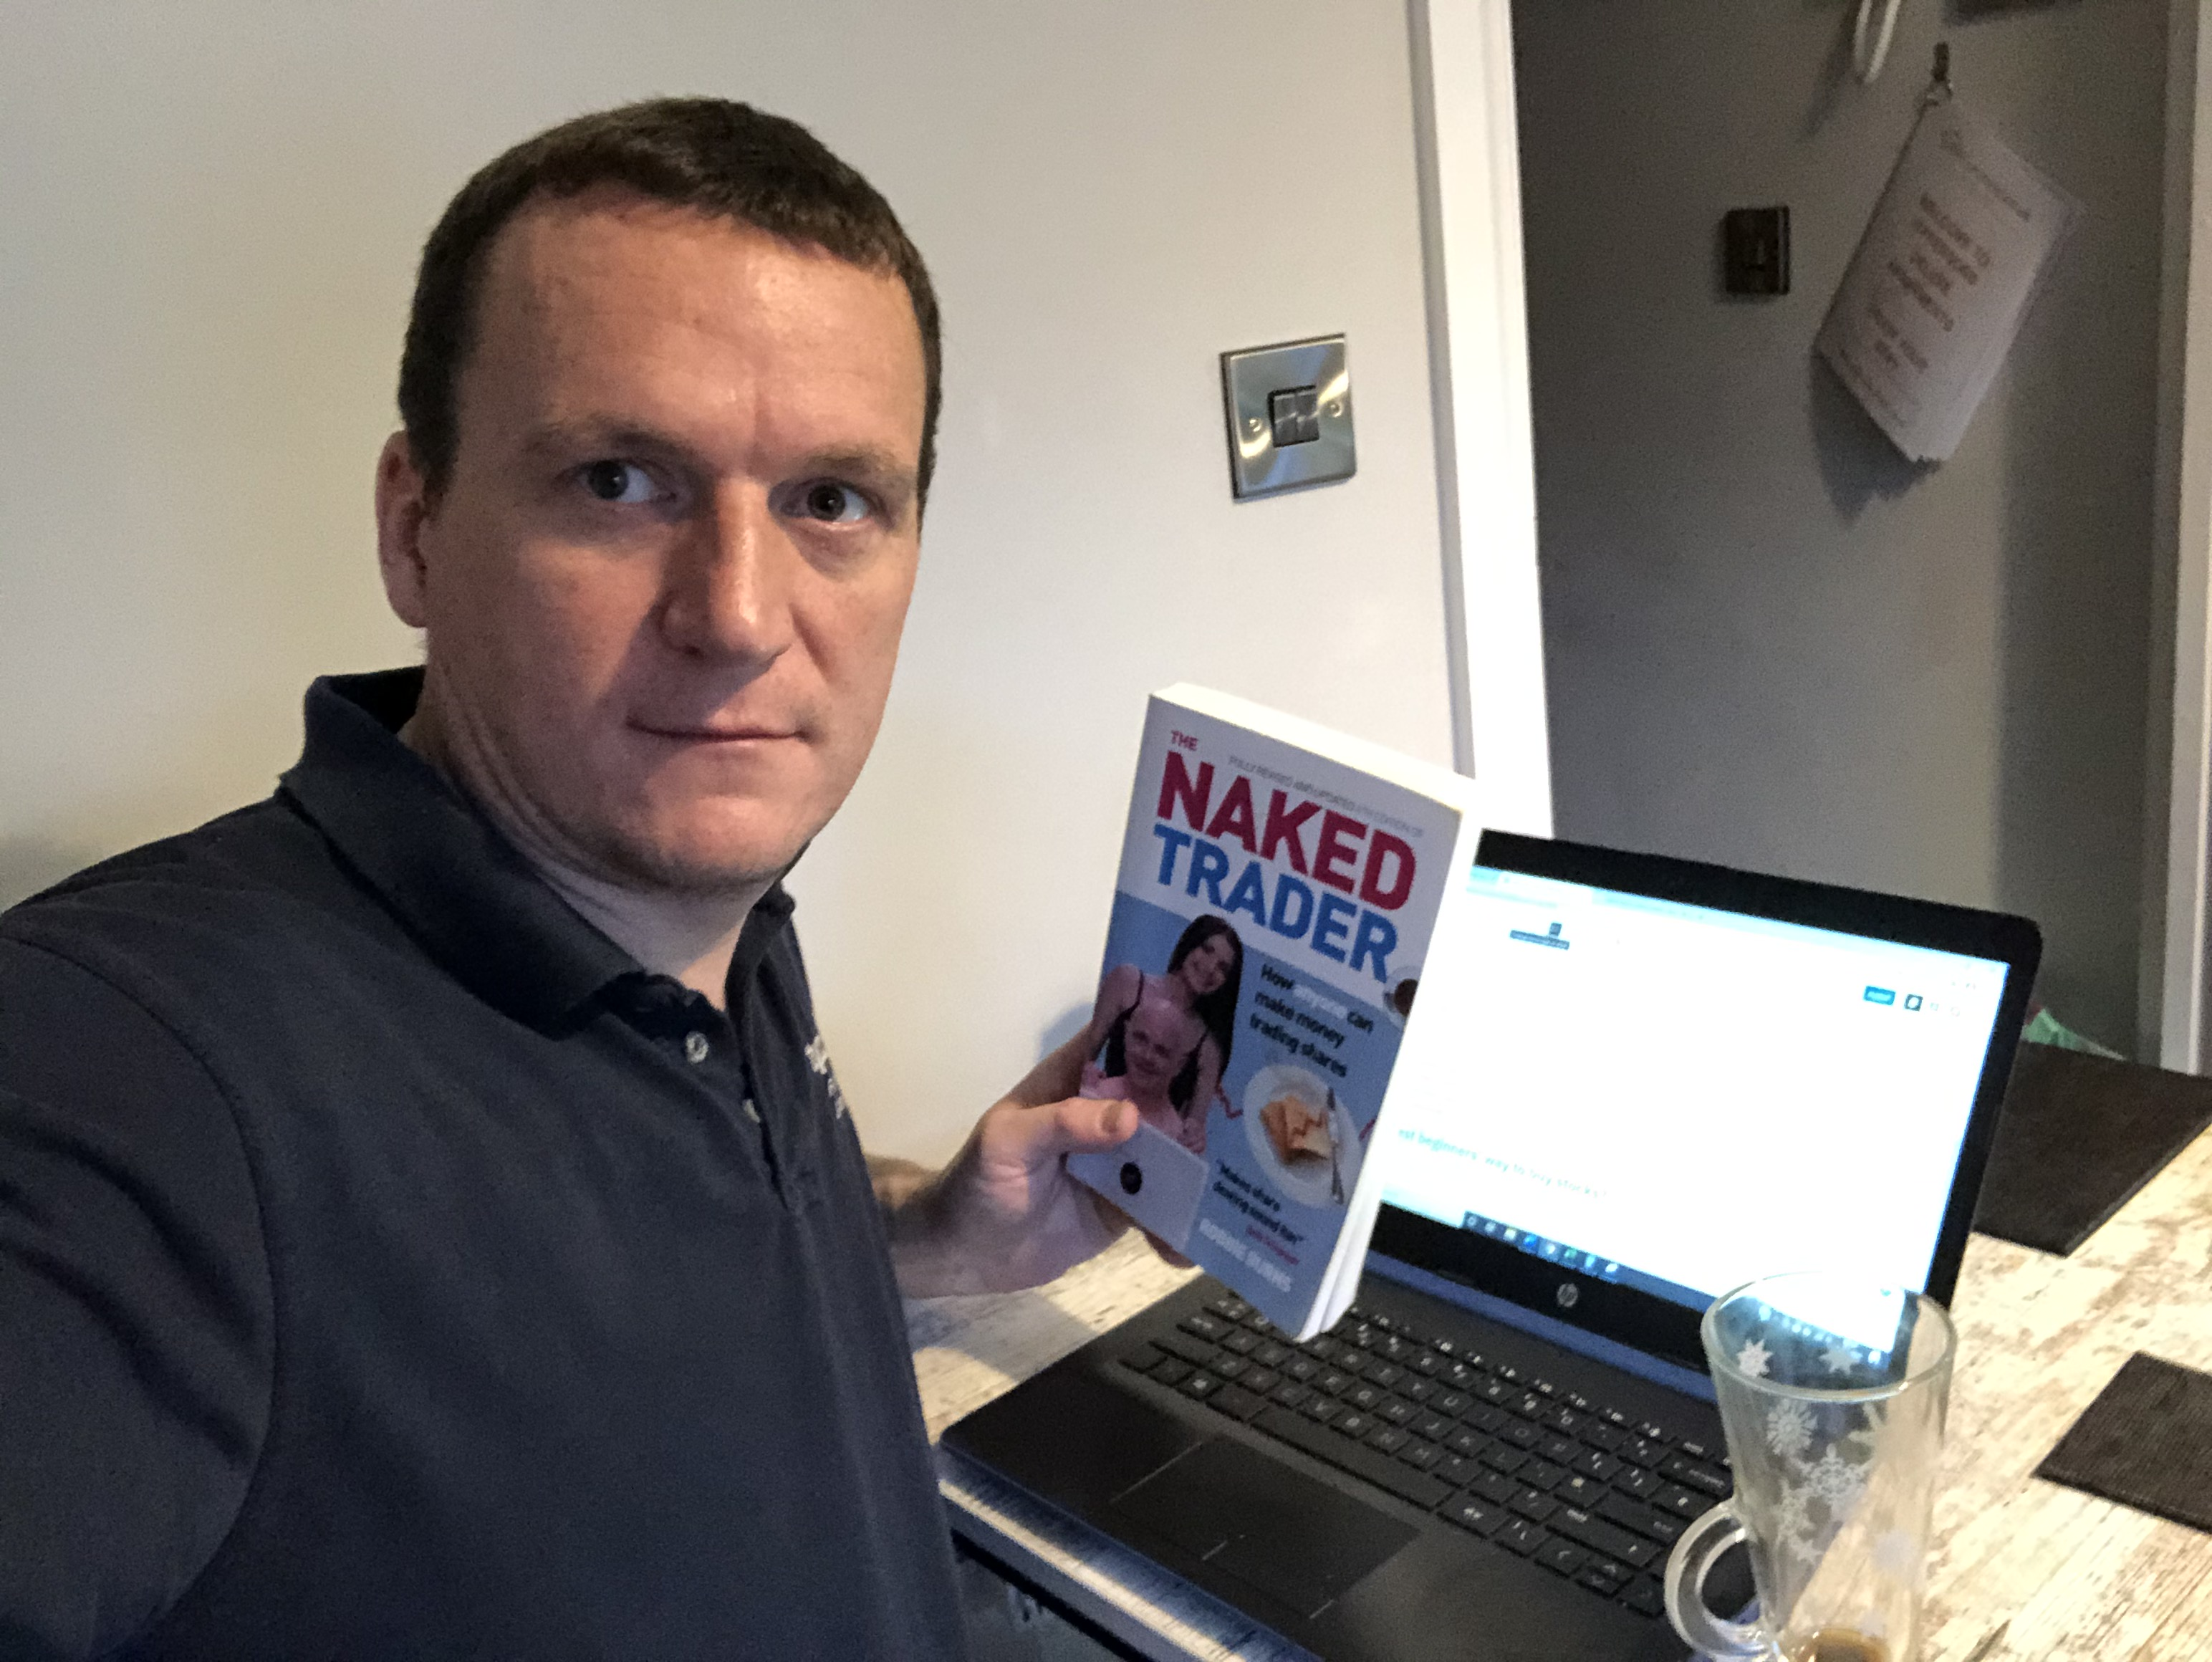 Robbie Burns The Naked trader review